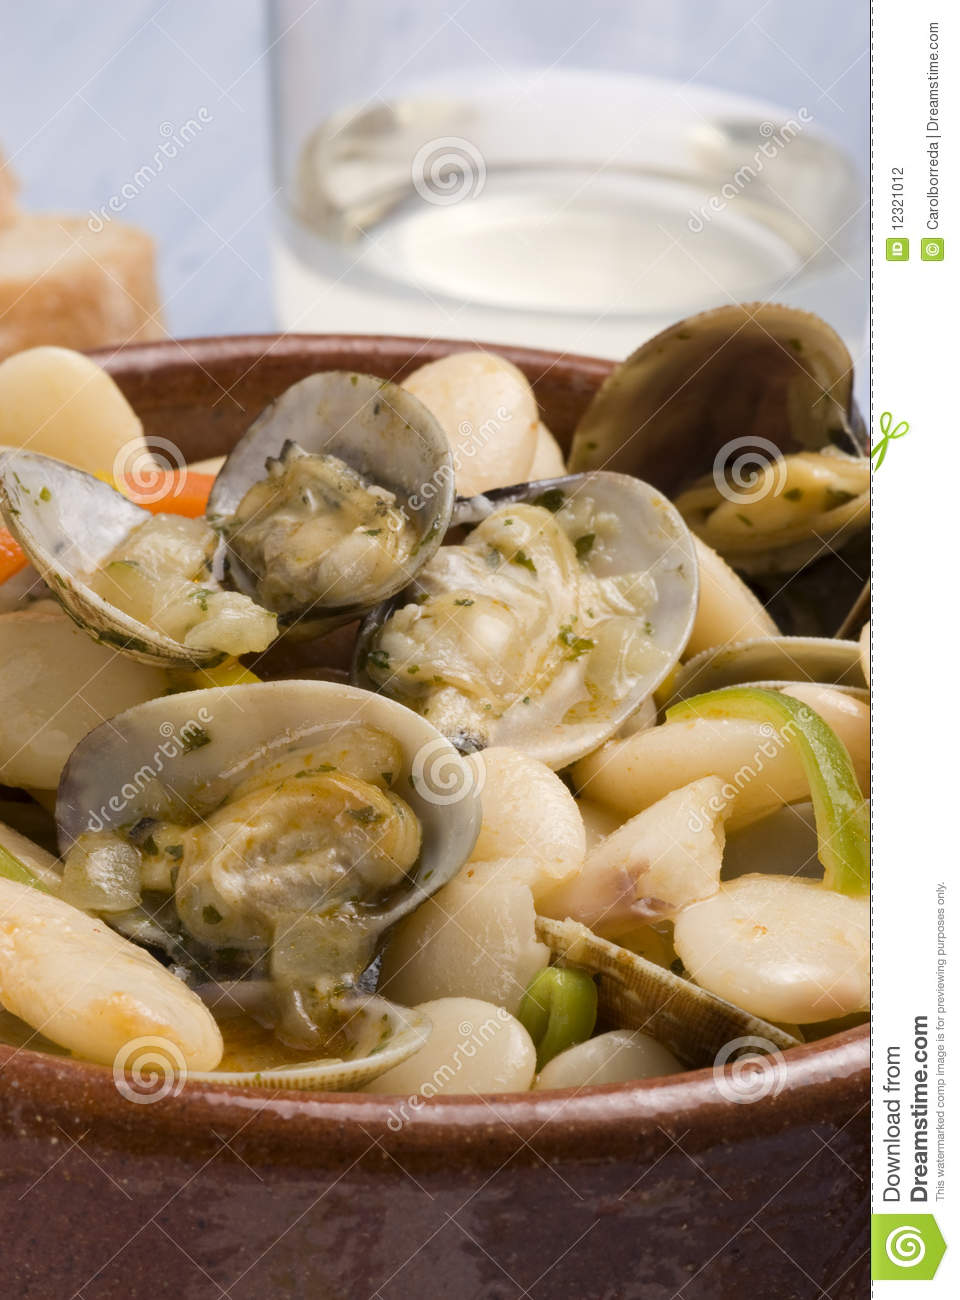 Clams and beans asturias style spanish cuisine stock for Asturian cuisine